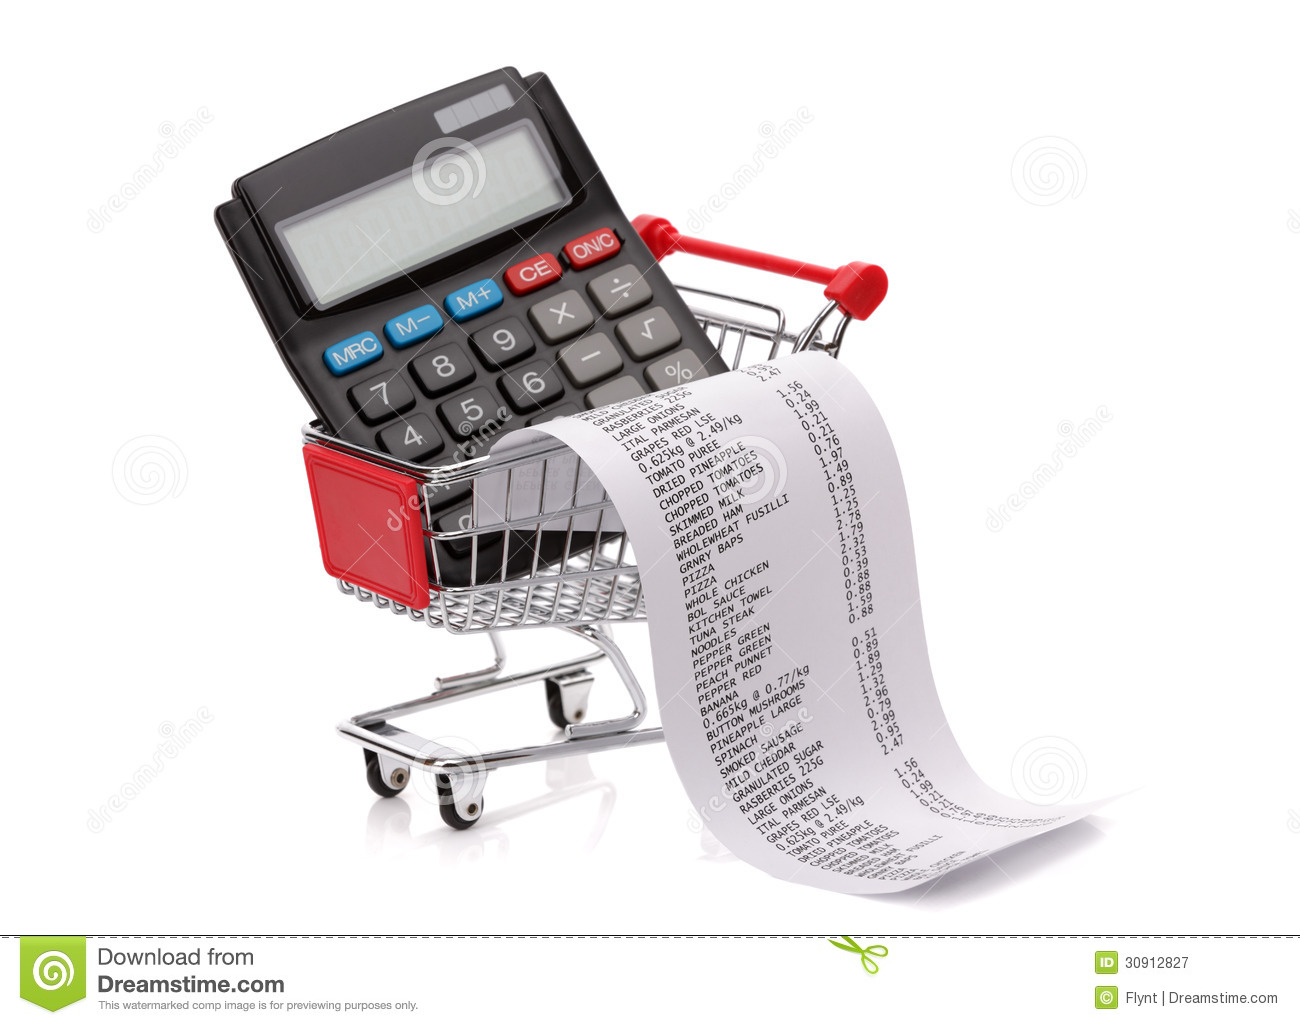 Royalty Free Stock Photography: Shopping till receipt, calculator and ...